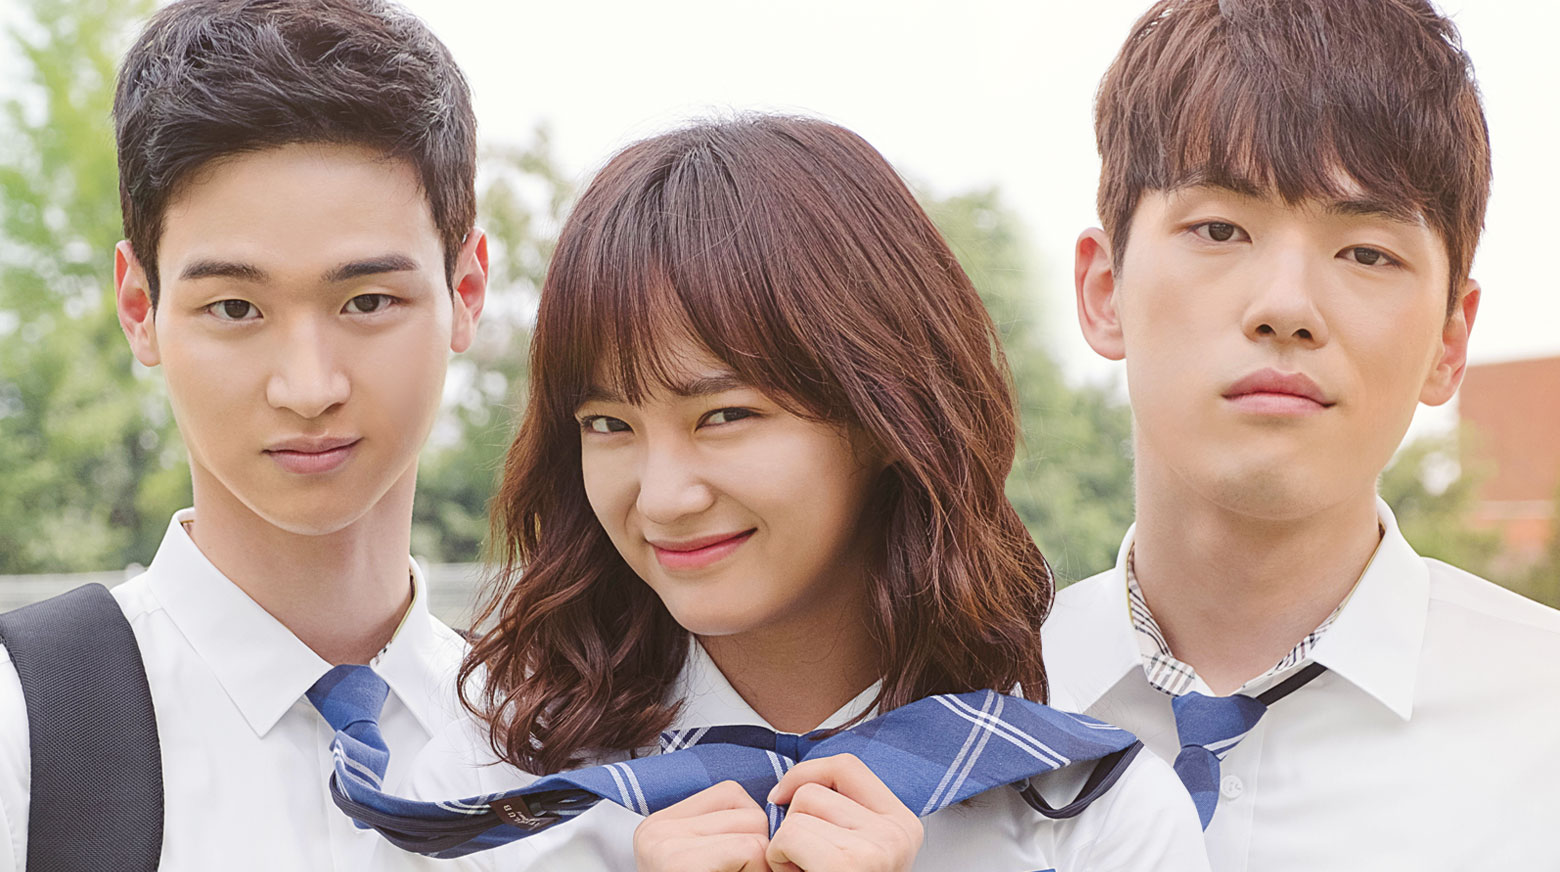 School 2017 channel thumbnail 1560x872 2